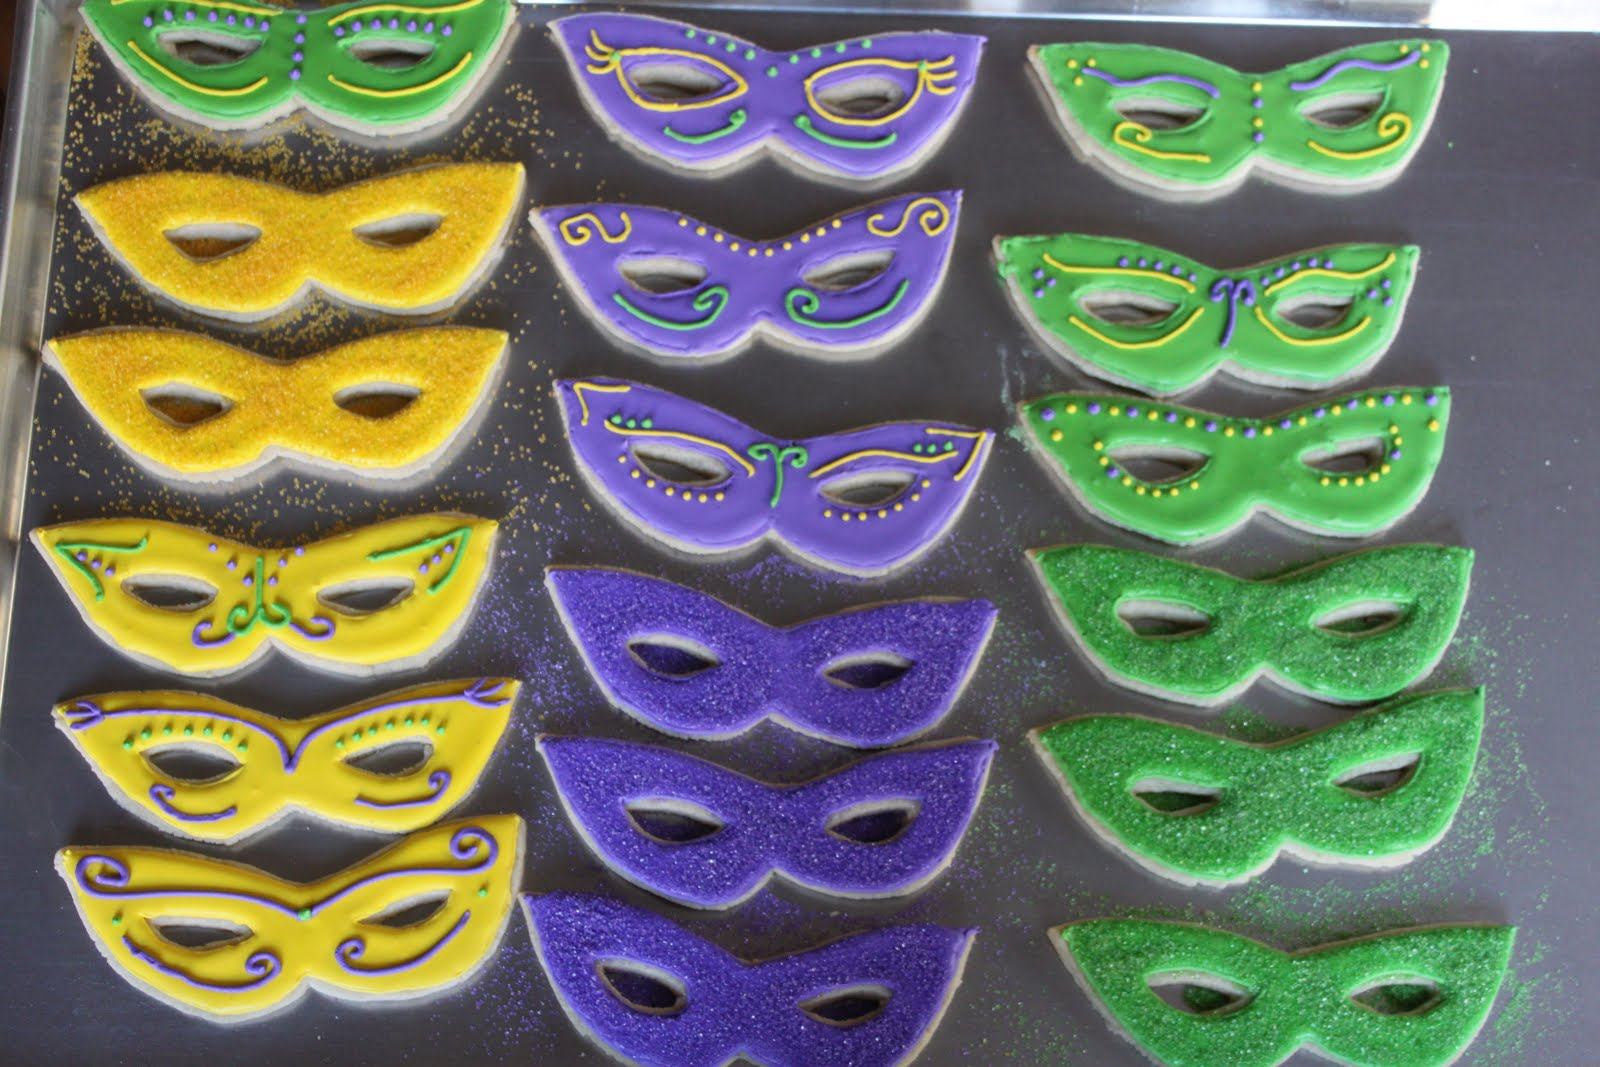 Crave. Indulge. Satisfy.: Mardi Gras Mask Cookies